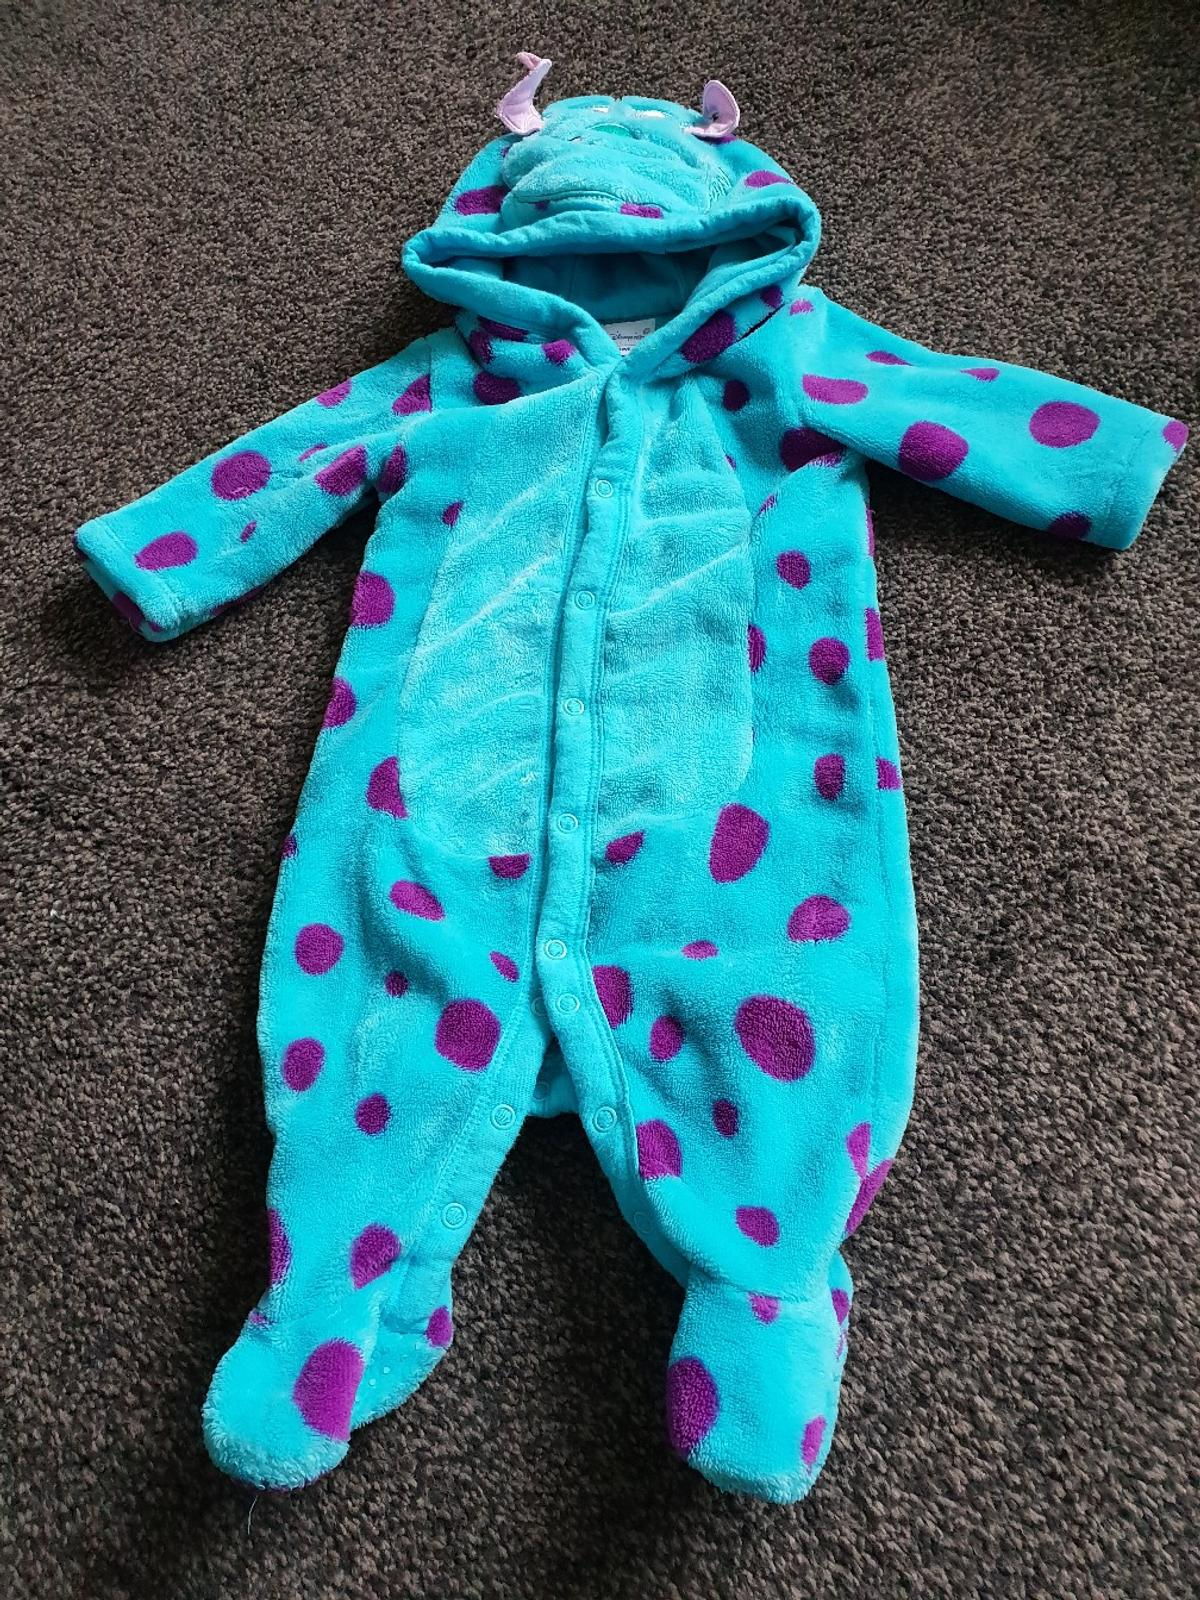 Monsters Inc Sully Fleece Onesie In Dy8 Dudley For 5 00 For Sale Shpock